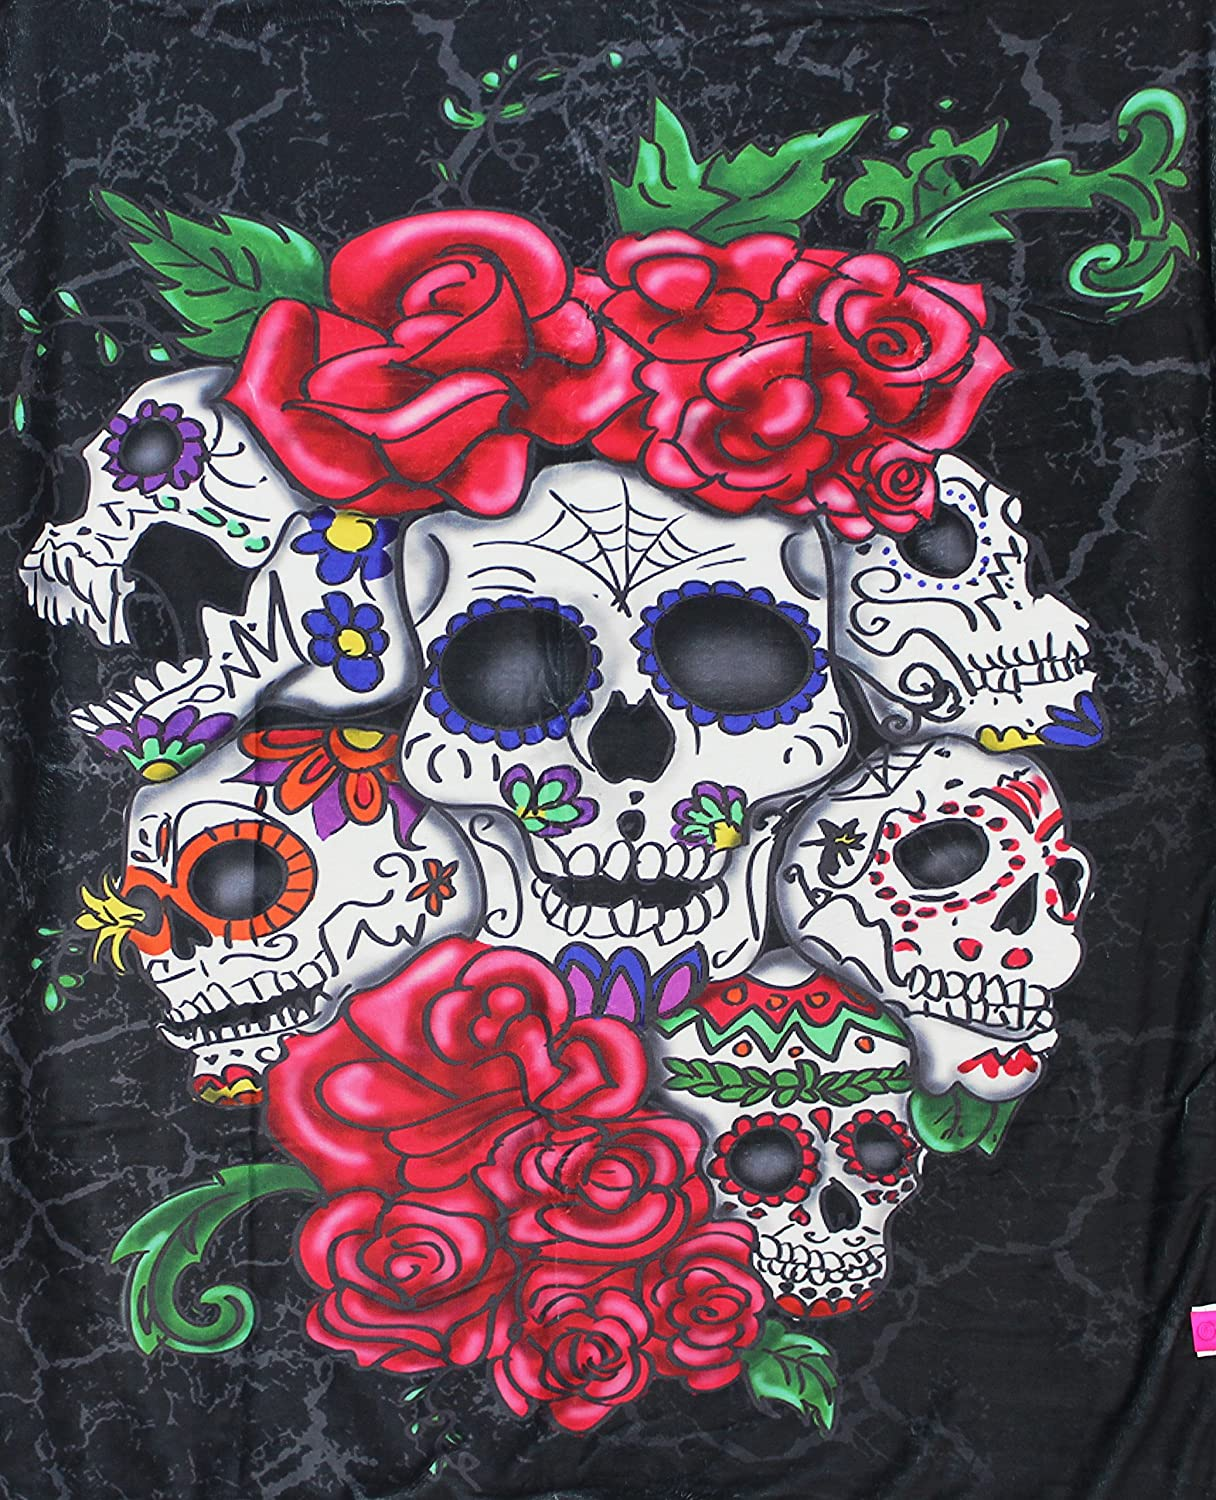 Pick Up A Unique Sugar Skull Blanket For Day Of The Dead